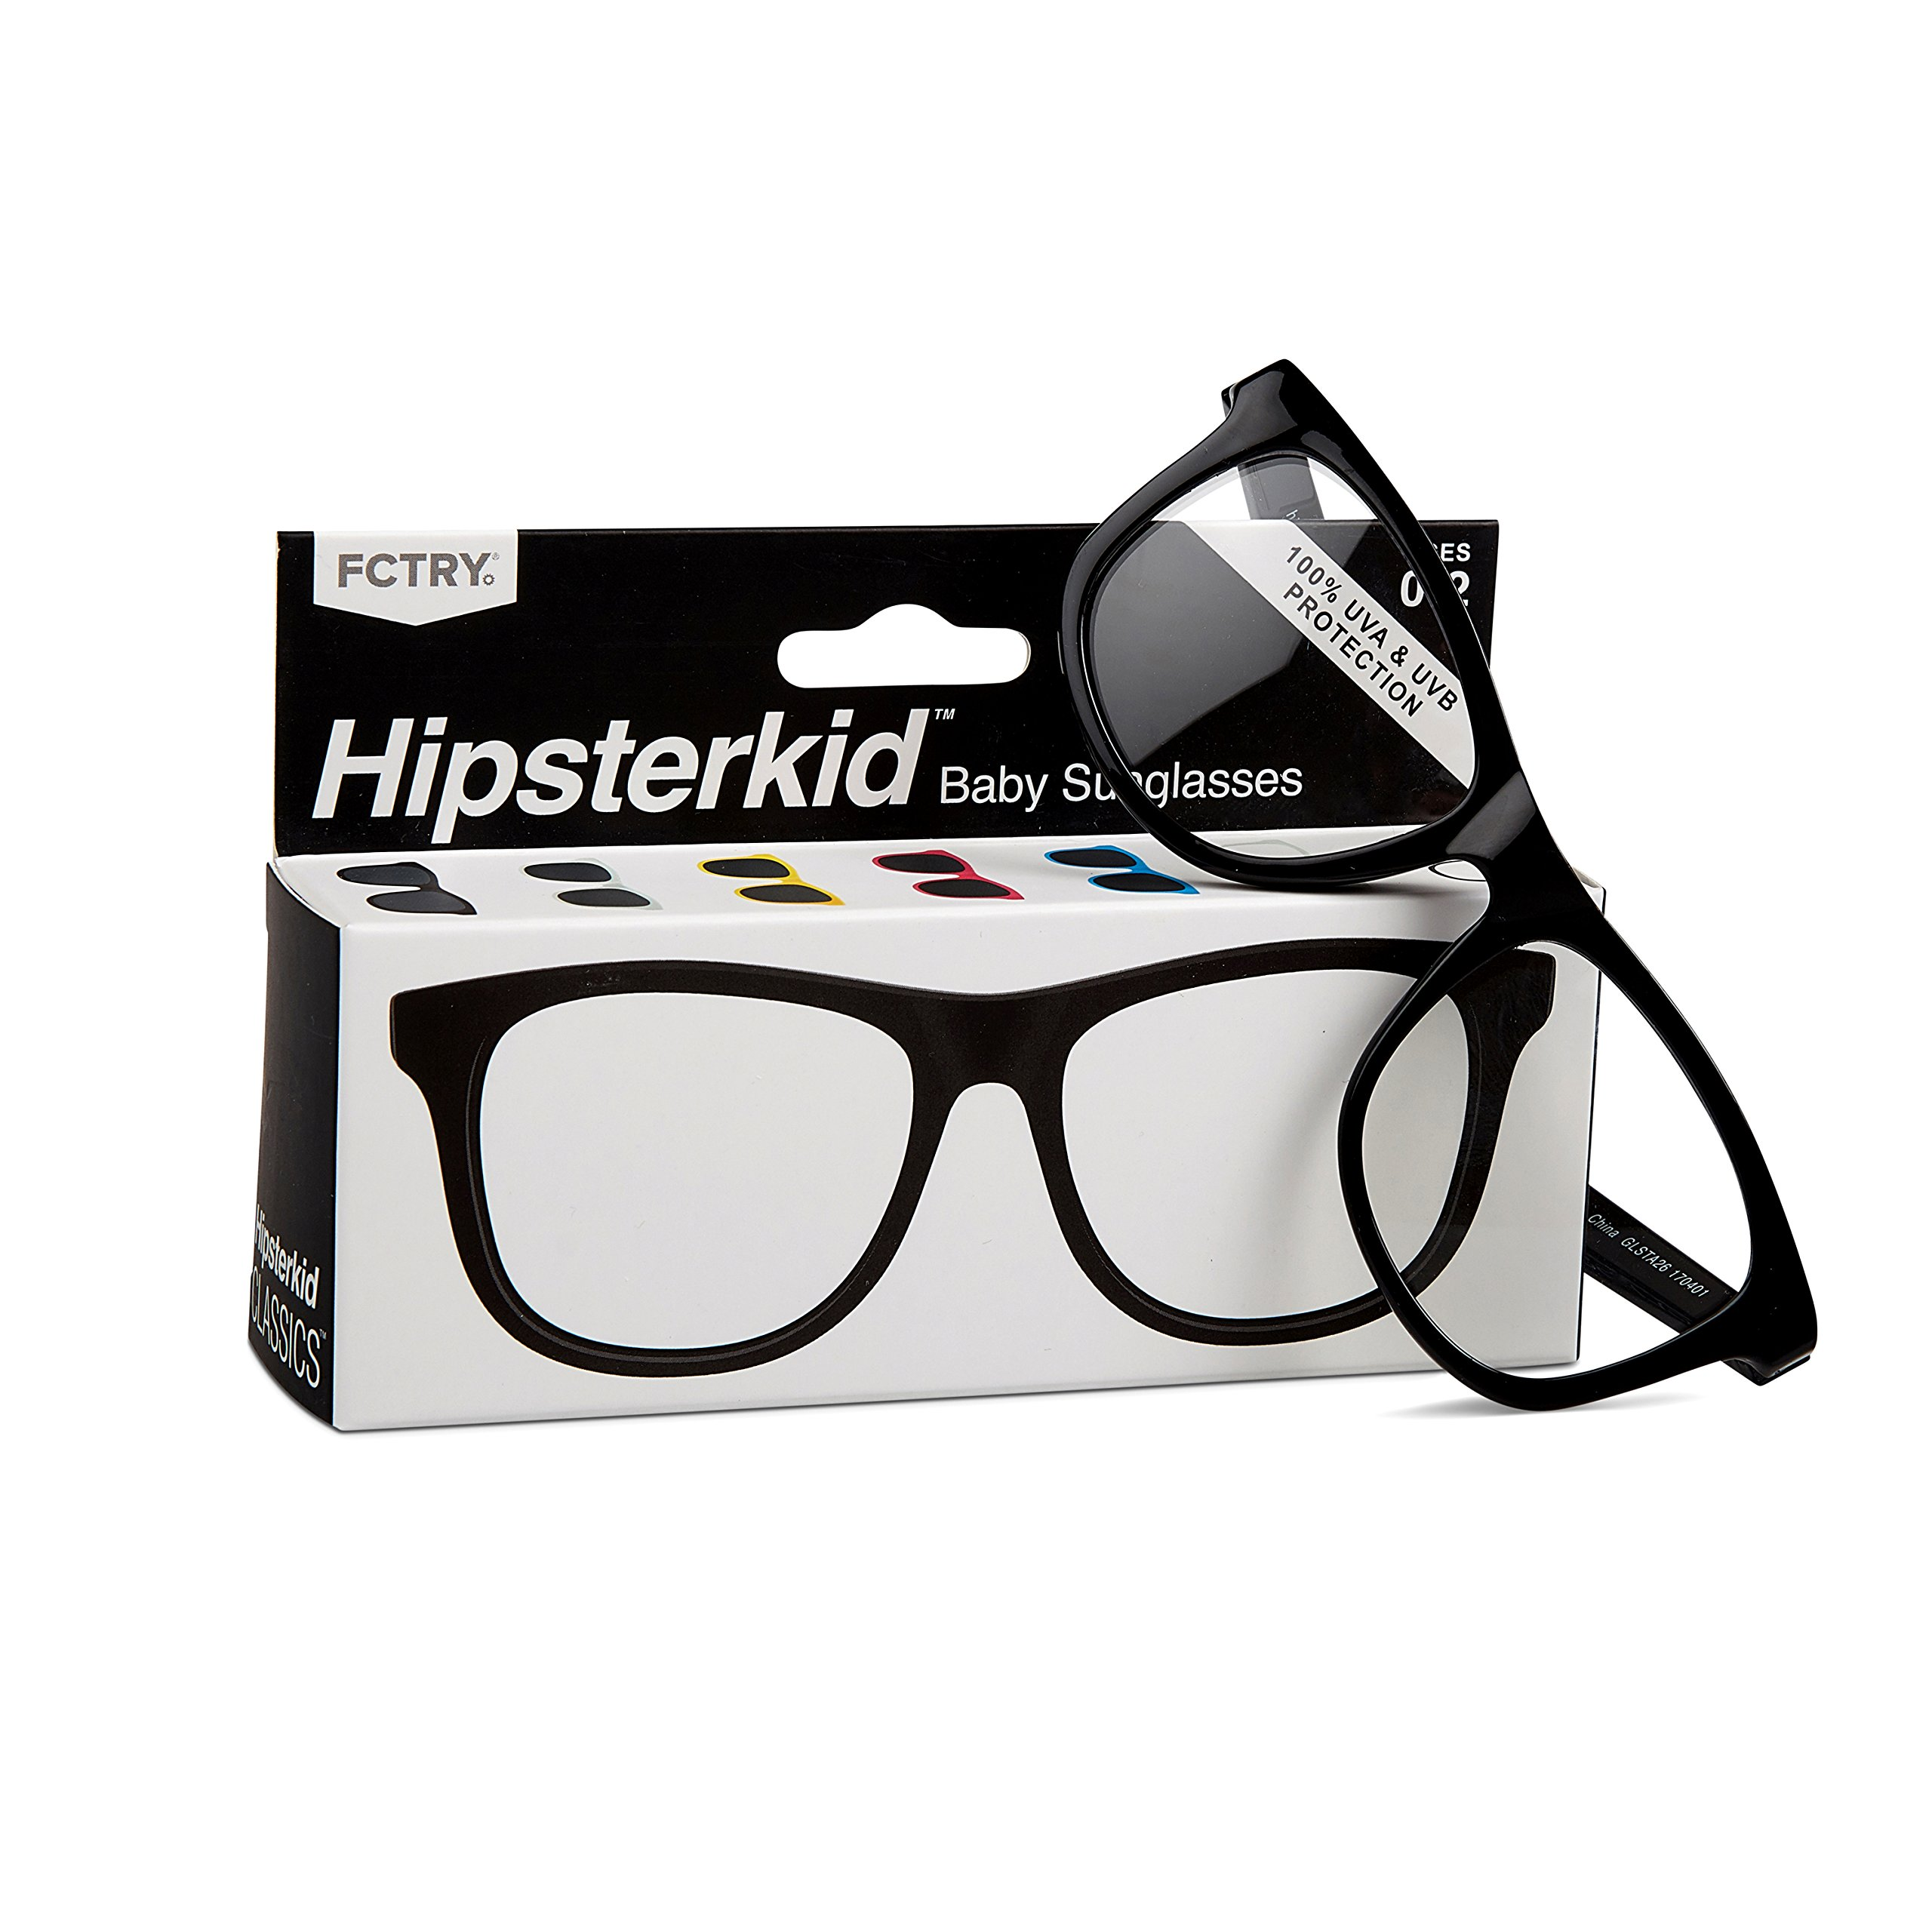 0f900378d83 Galleon - Hipsterkid Baby Opticals - Glasses W Strap - Kids Girl Boy -  Break It Or Lose It Warranty (Black Clear UV)(Ages 3-6)